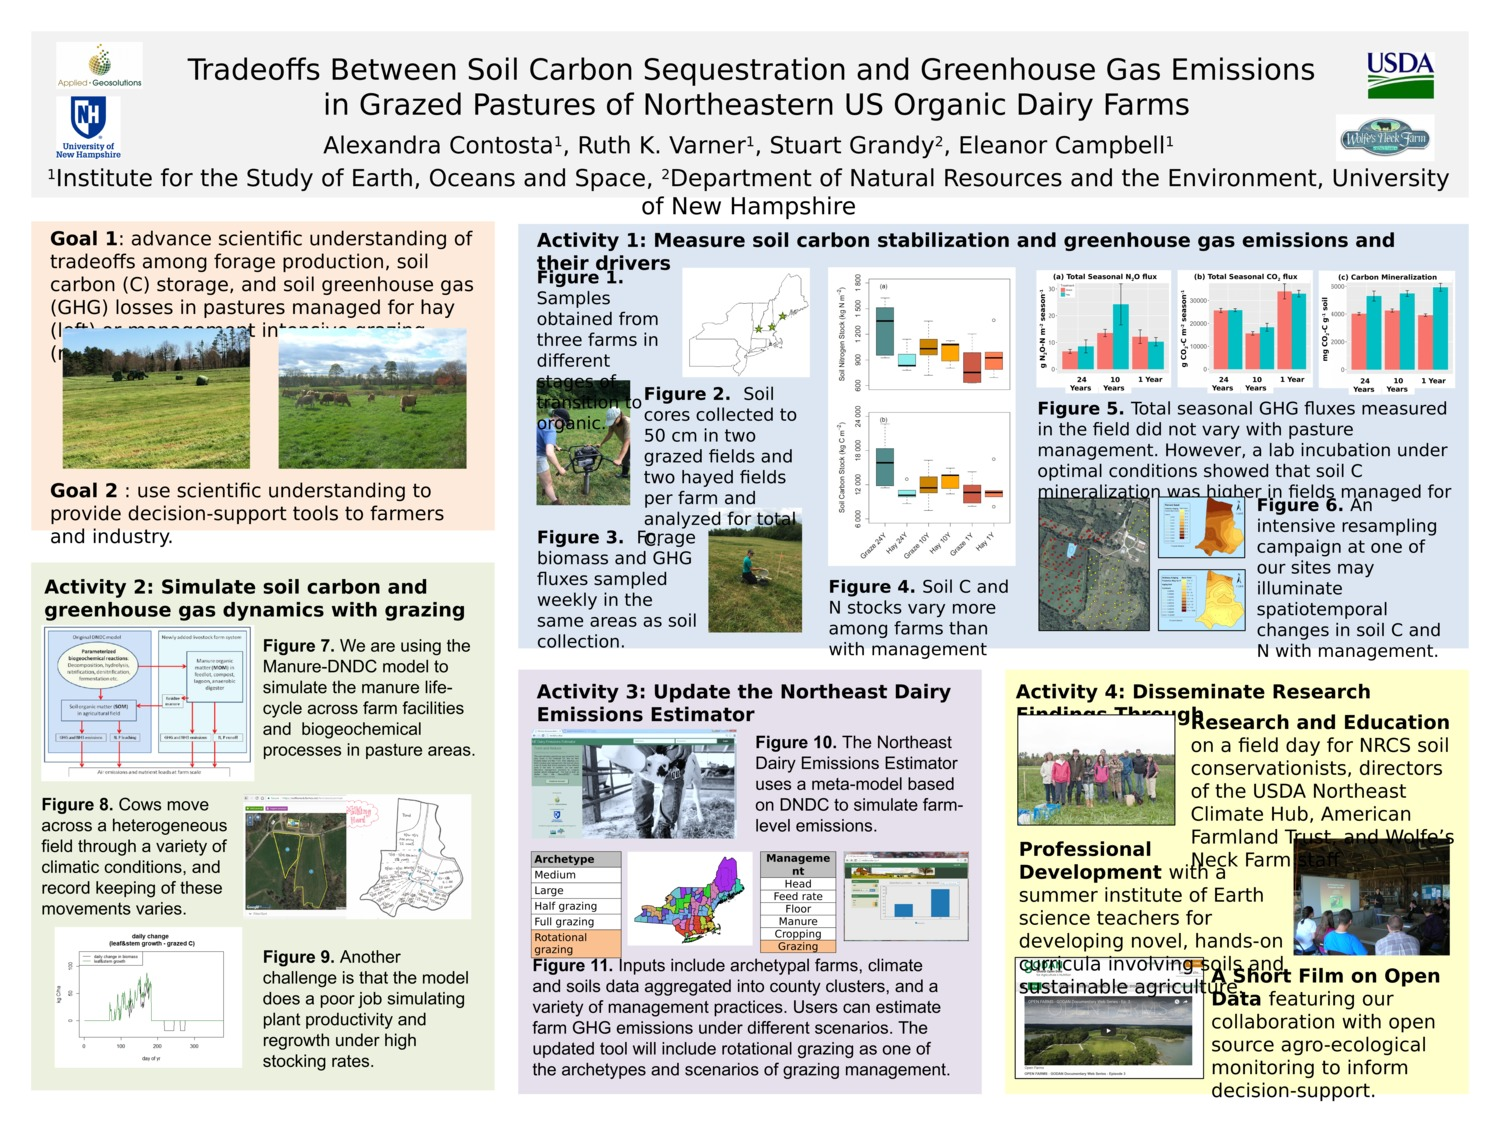 Tradeoffs Between Soil Carbon Sequestration And Greenhouse Gas Emissions In Grazed Pastures Of Northeastern Us Organic Dairy Farms by Contosta